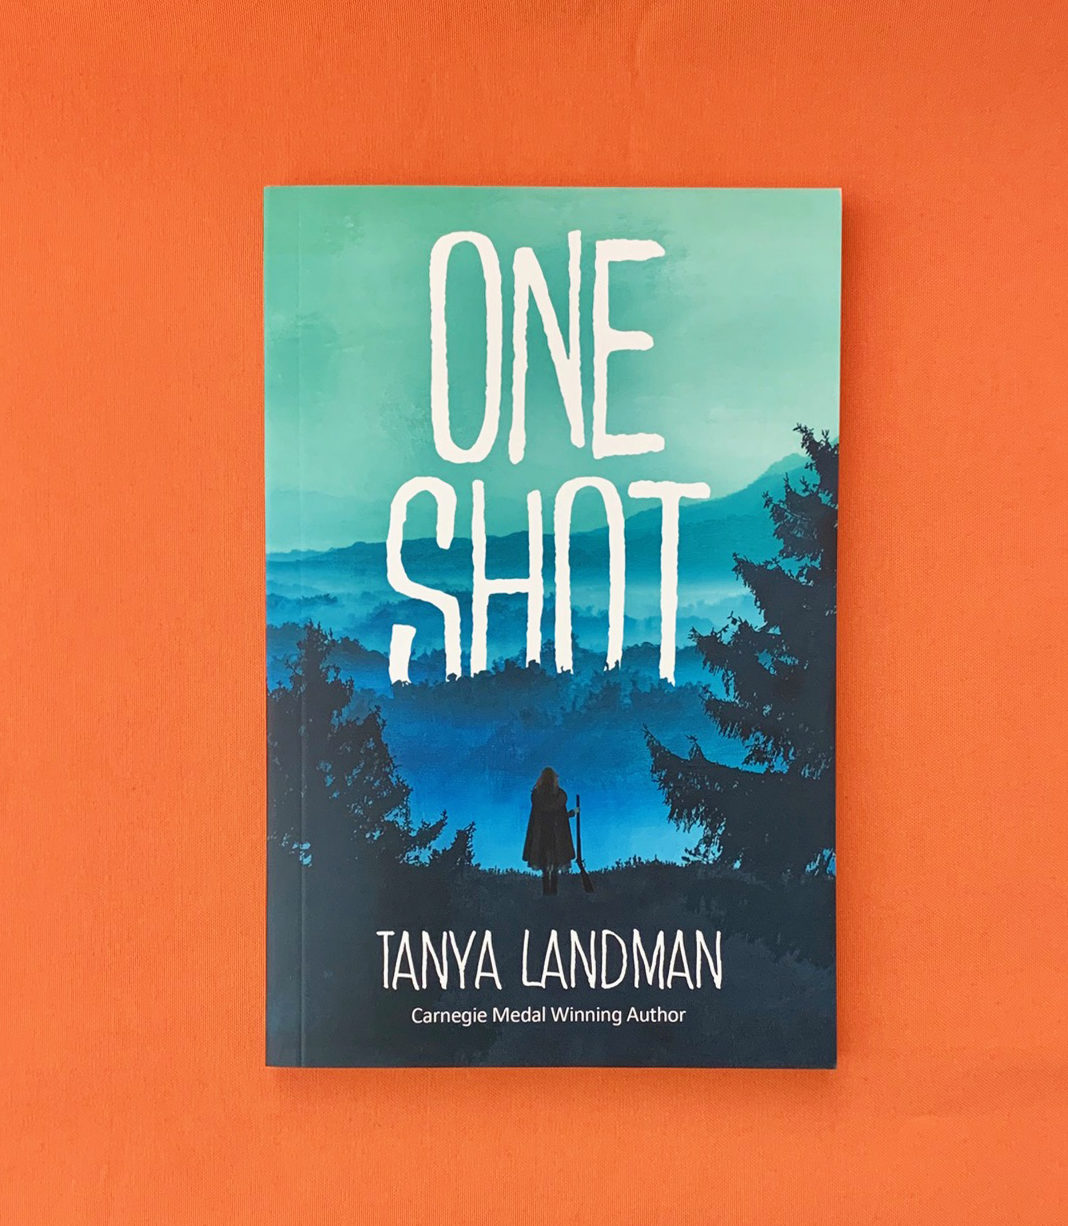 A photograph of the Book ONE SHOT by Tanya Landman